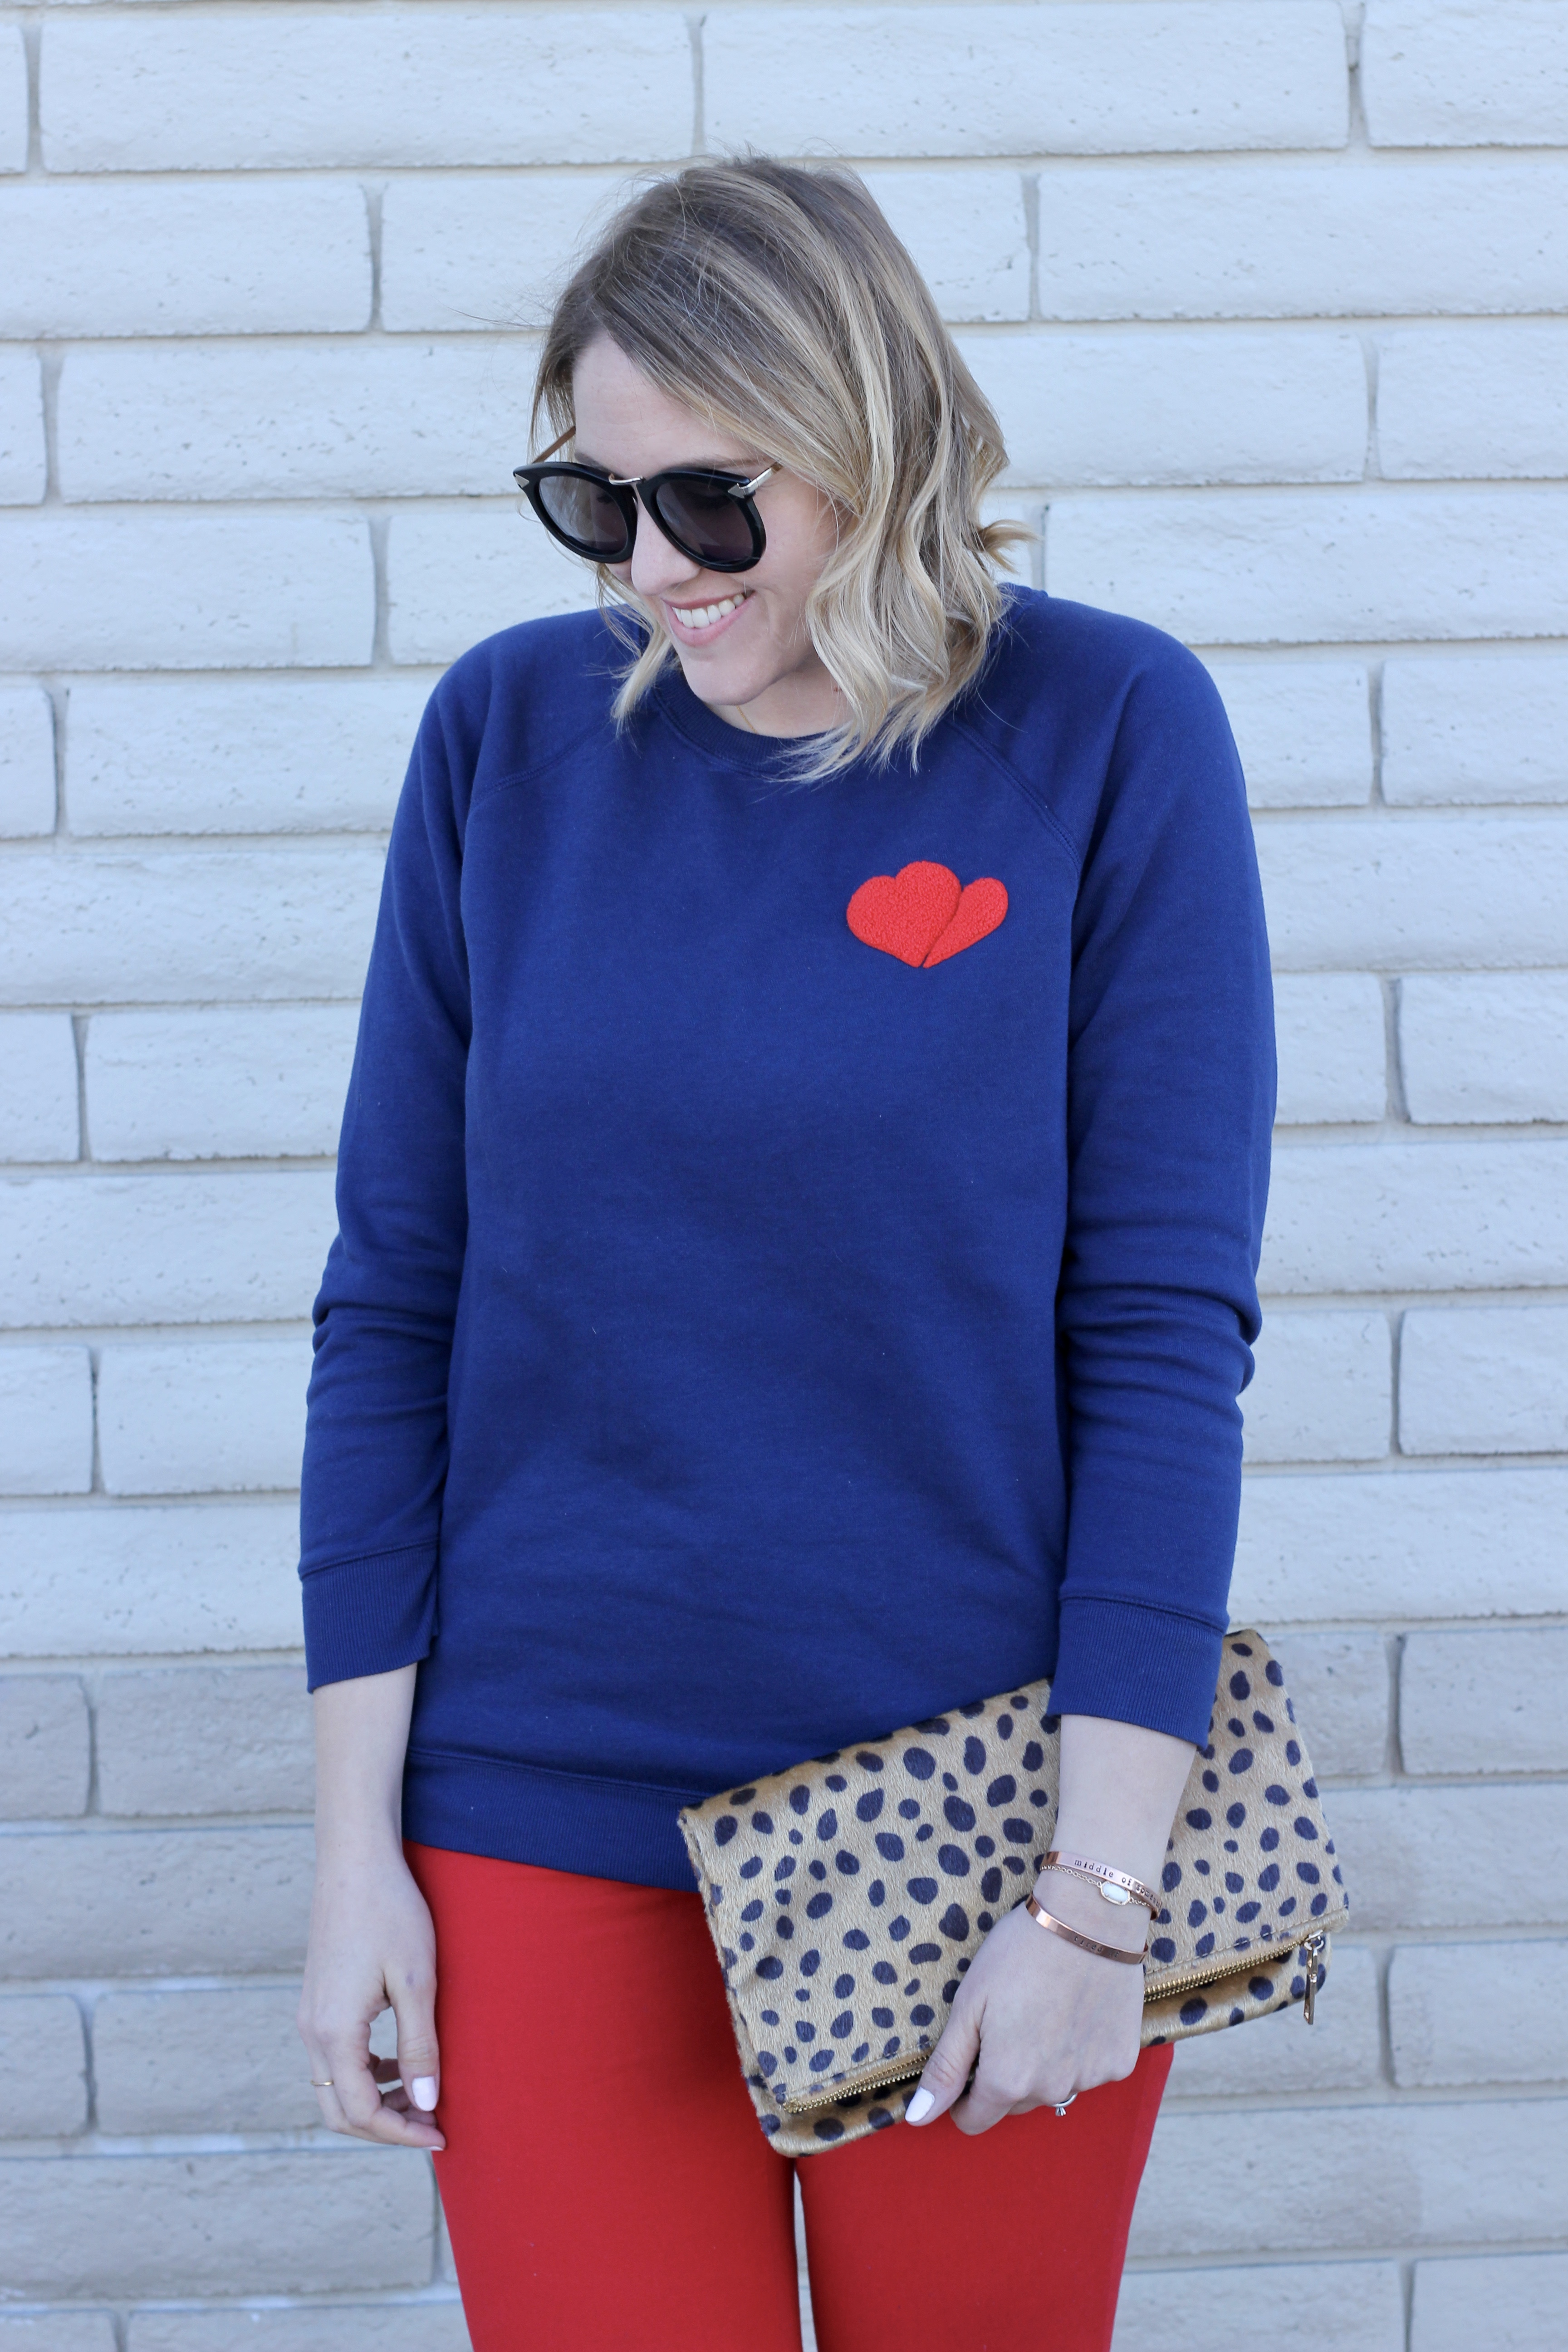 easy valentines day outfit #oldnavystyle #valentinesdaystyle